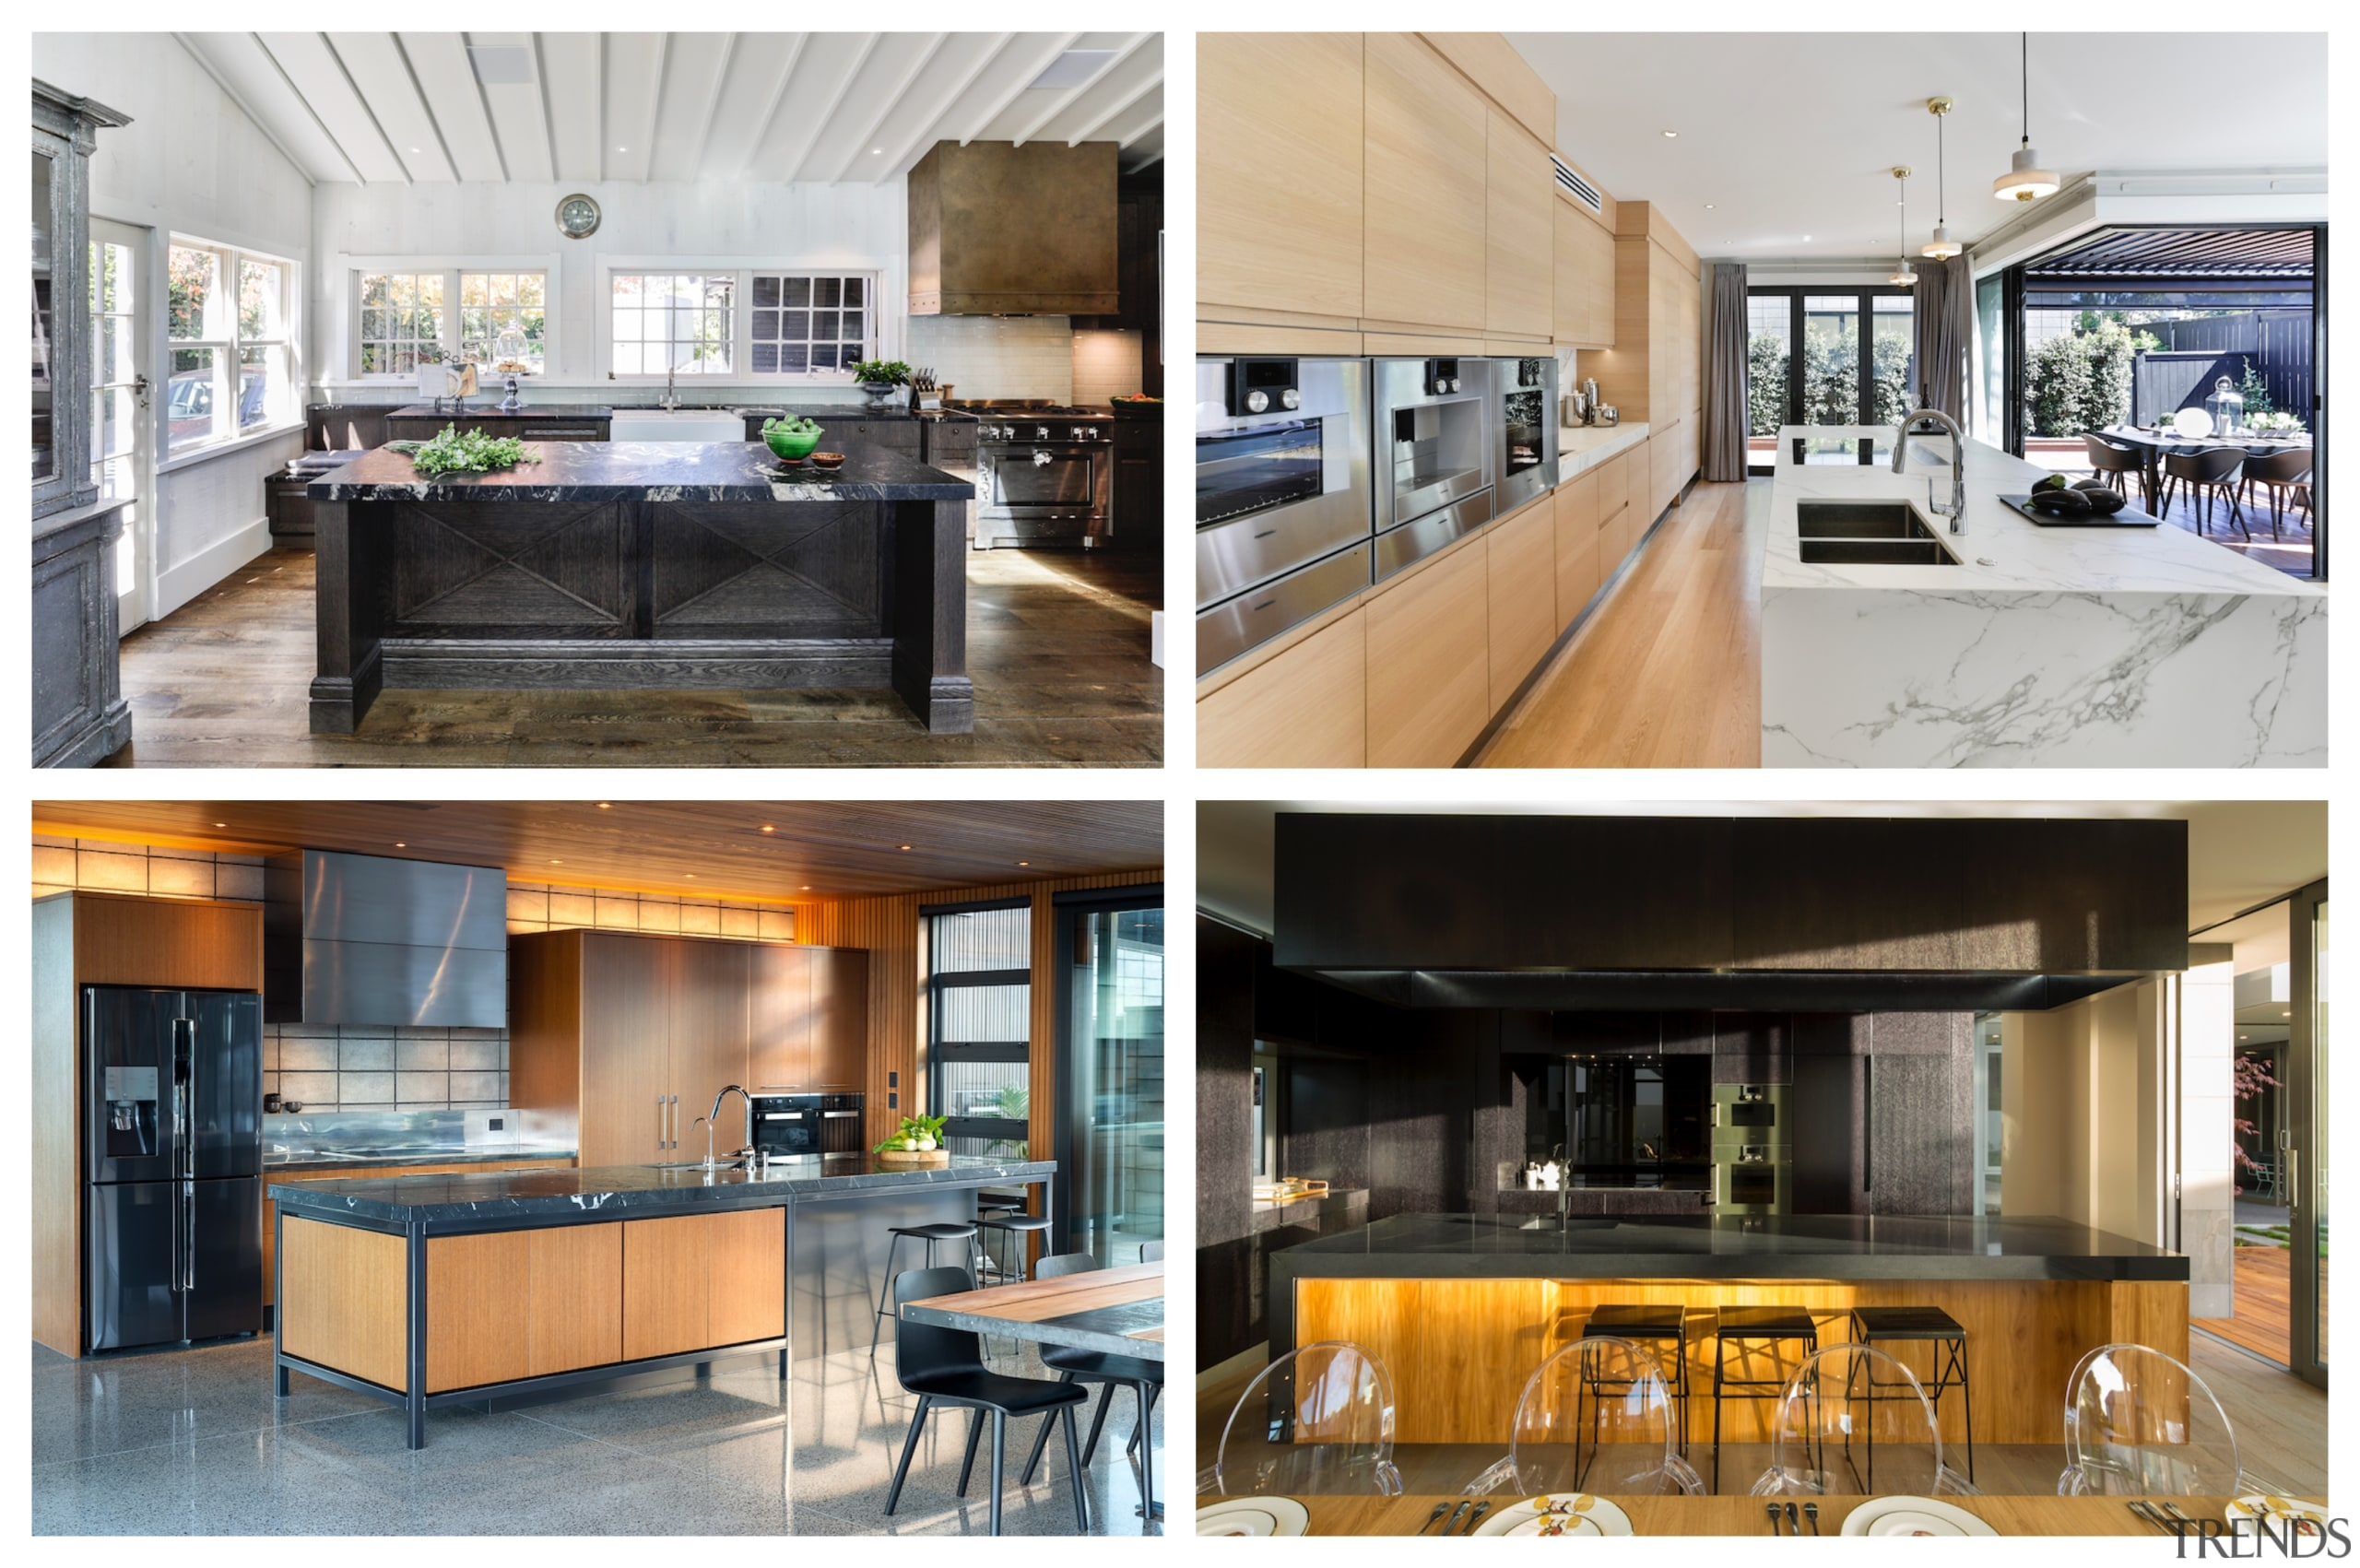 NZ 4 x kitchen category finalist banner - architecture, building, cabinetry, ceiling, design, floor, furniture, home, house, interior design, living room, property, real estate, room, table, white